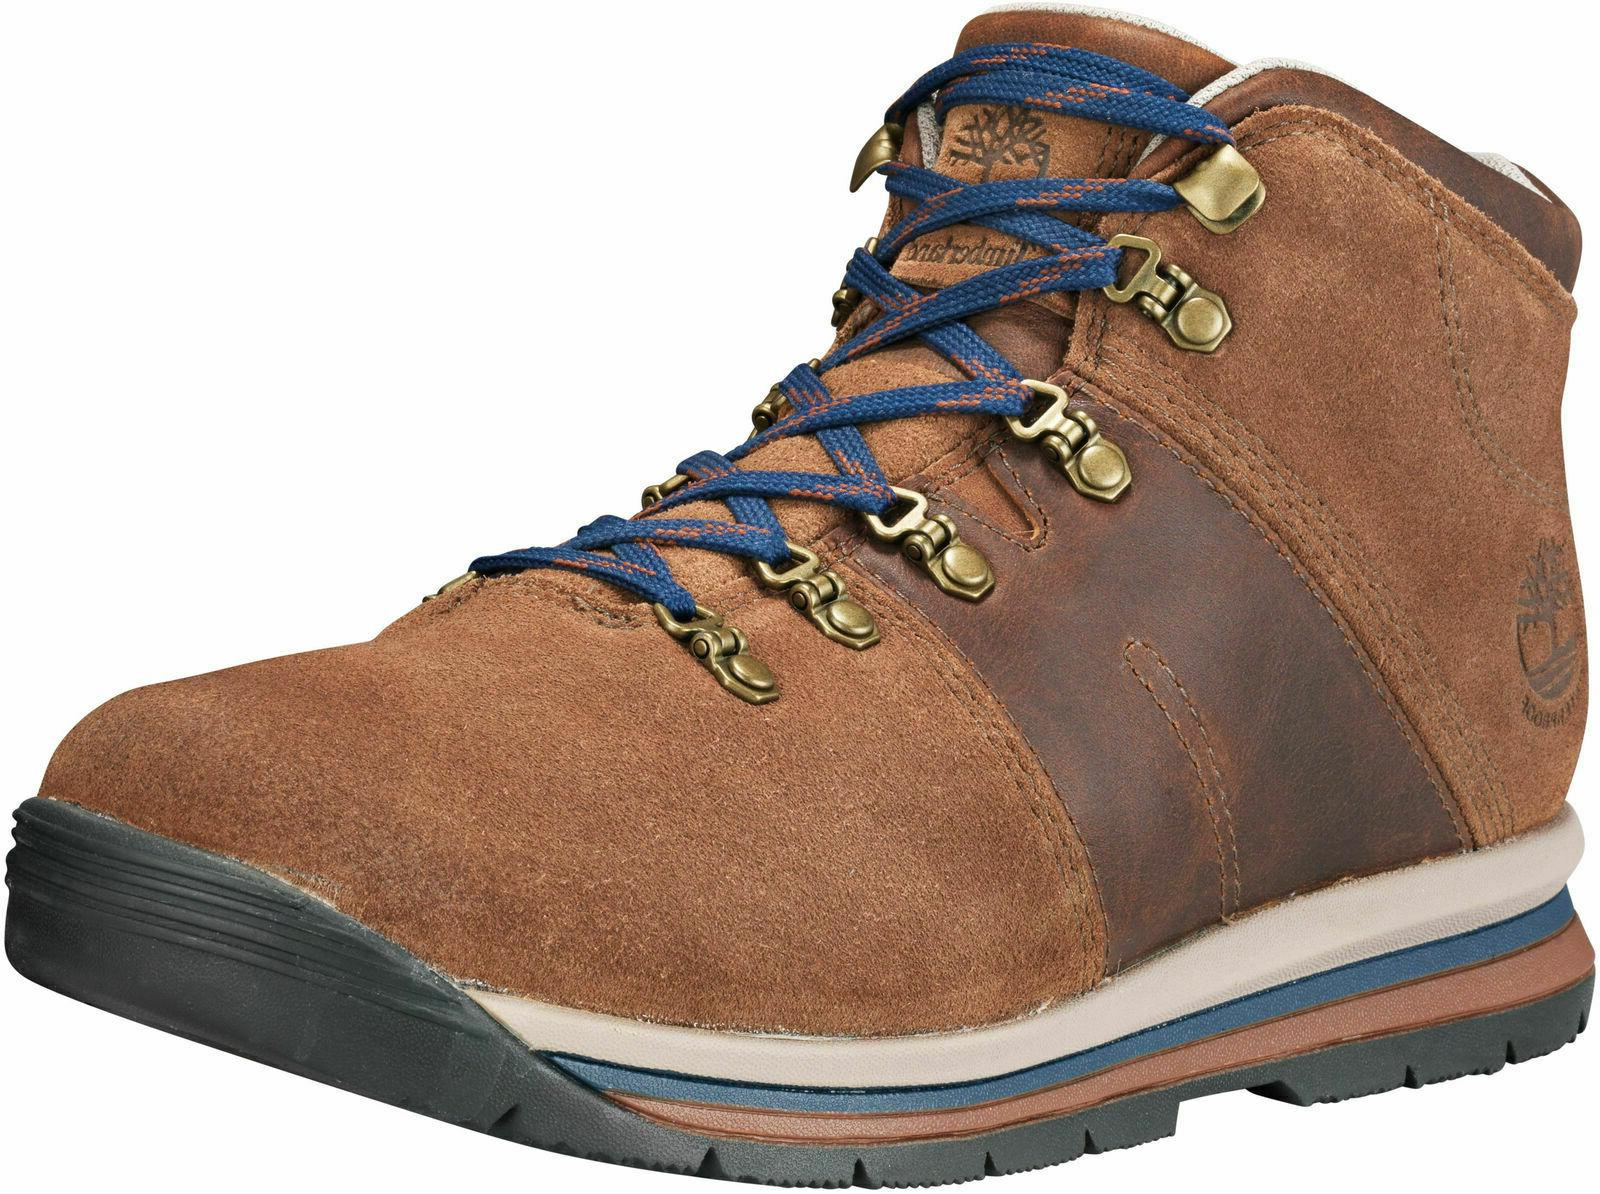 Timberland GT Rally Mid Hiking Boots Brown Waterpro